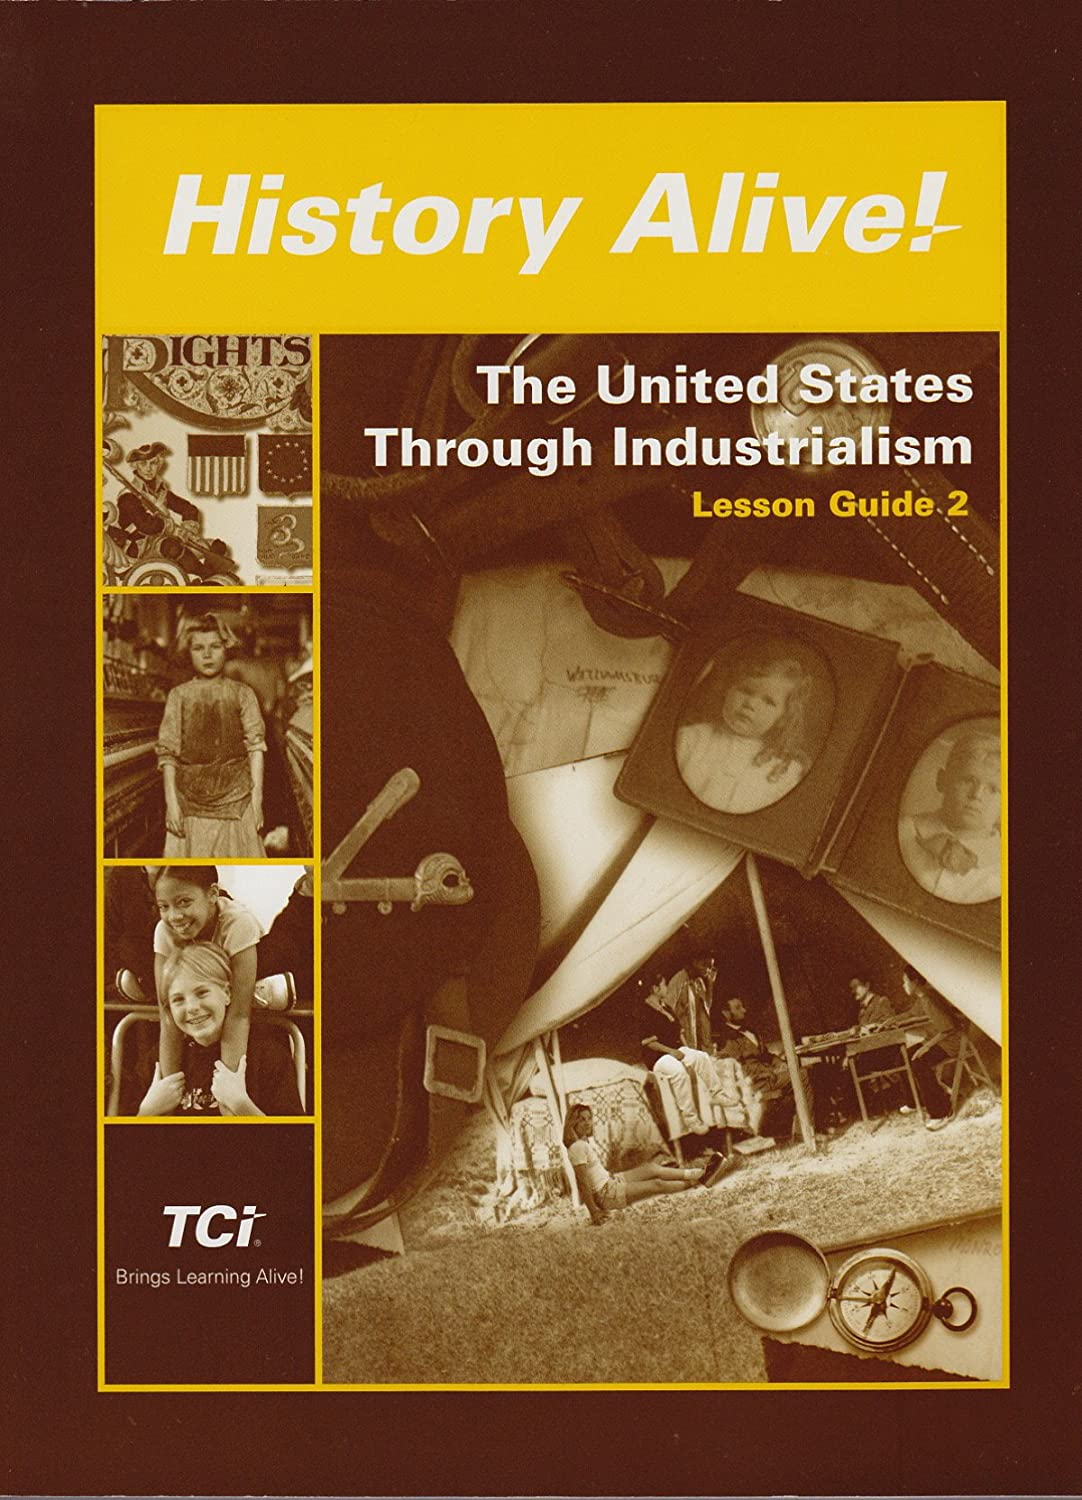 Amazon.com: History Alive: The United States Through Industrialism - Lesson  Guide 2 - Lessons 15-29: Editor Alavosus Laura: Health & Personal Care